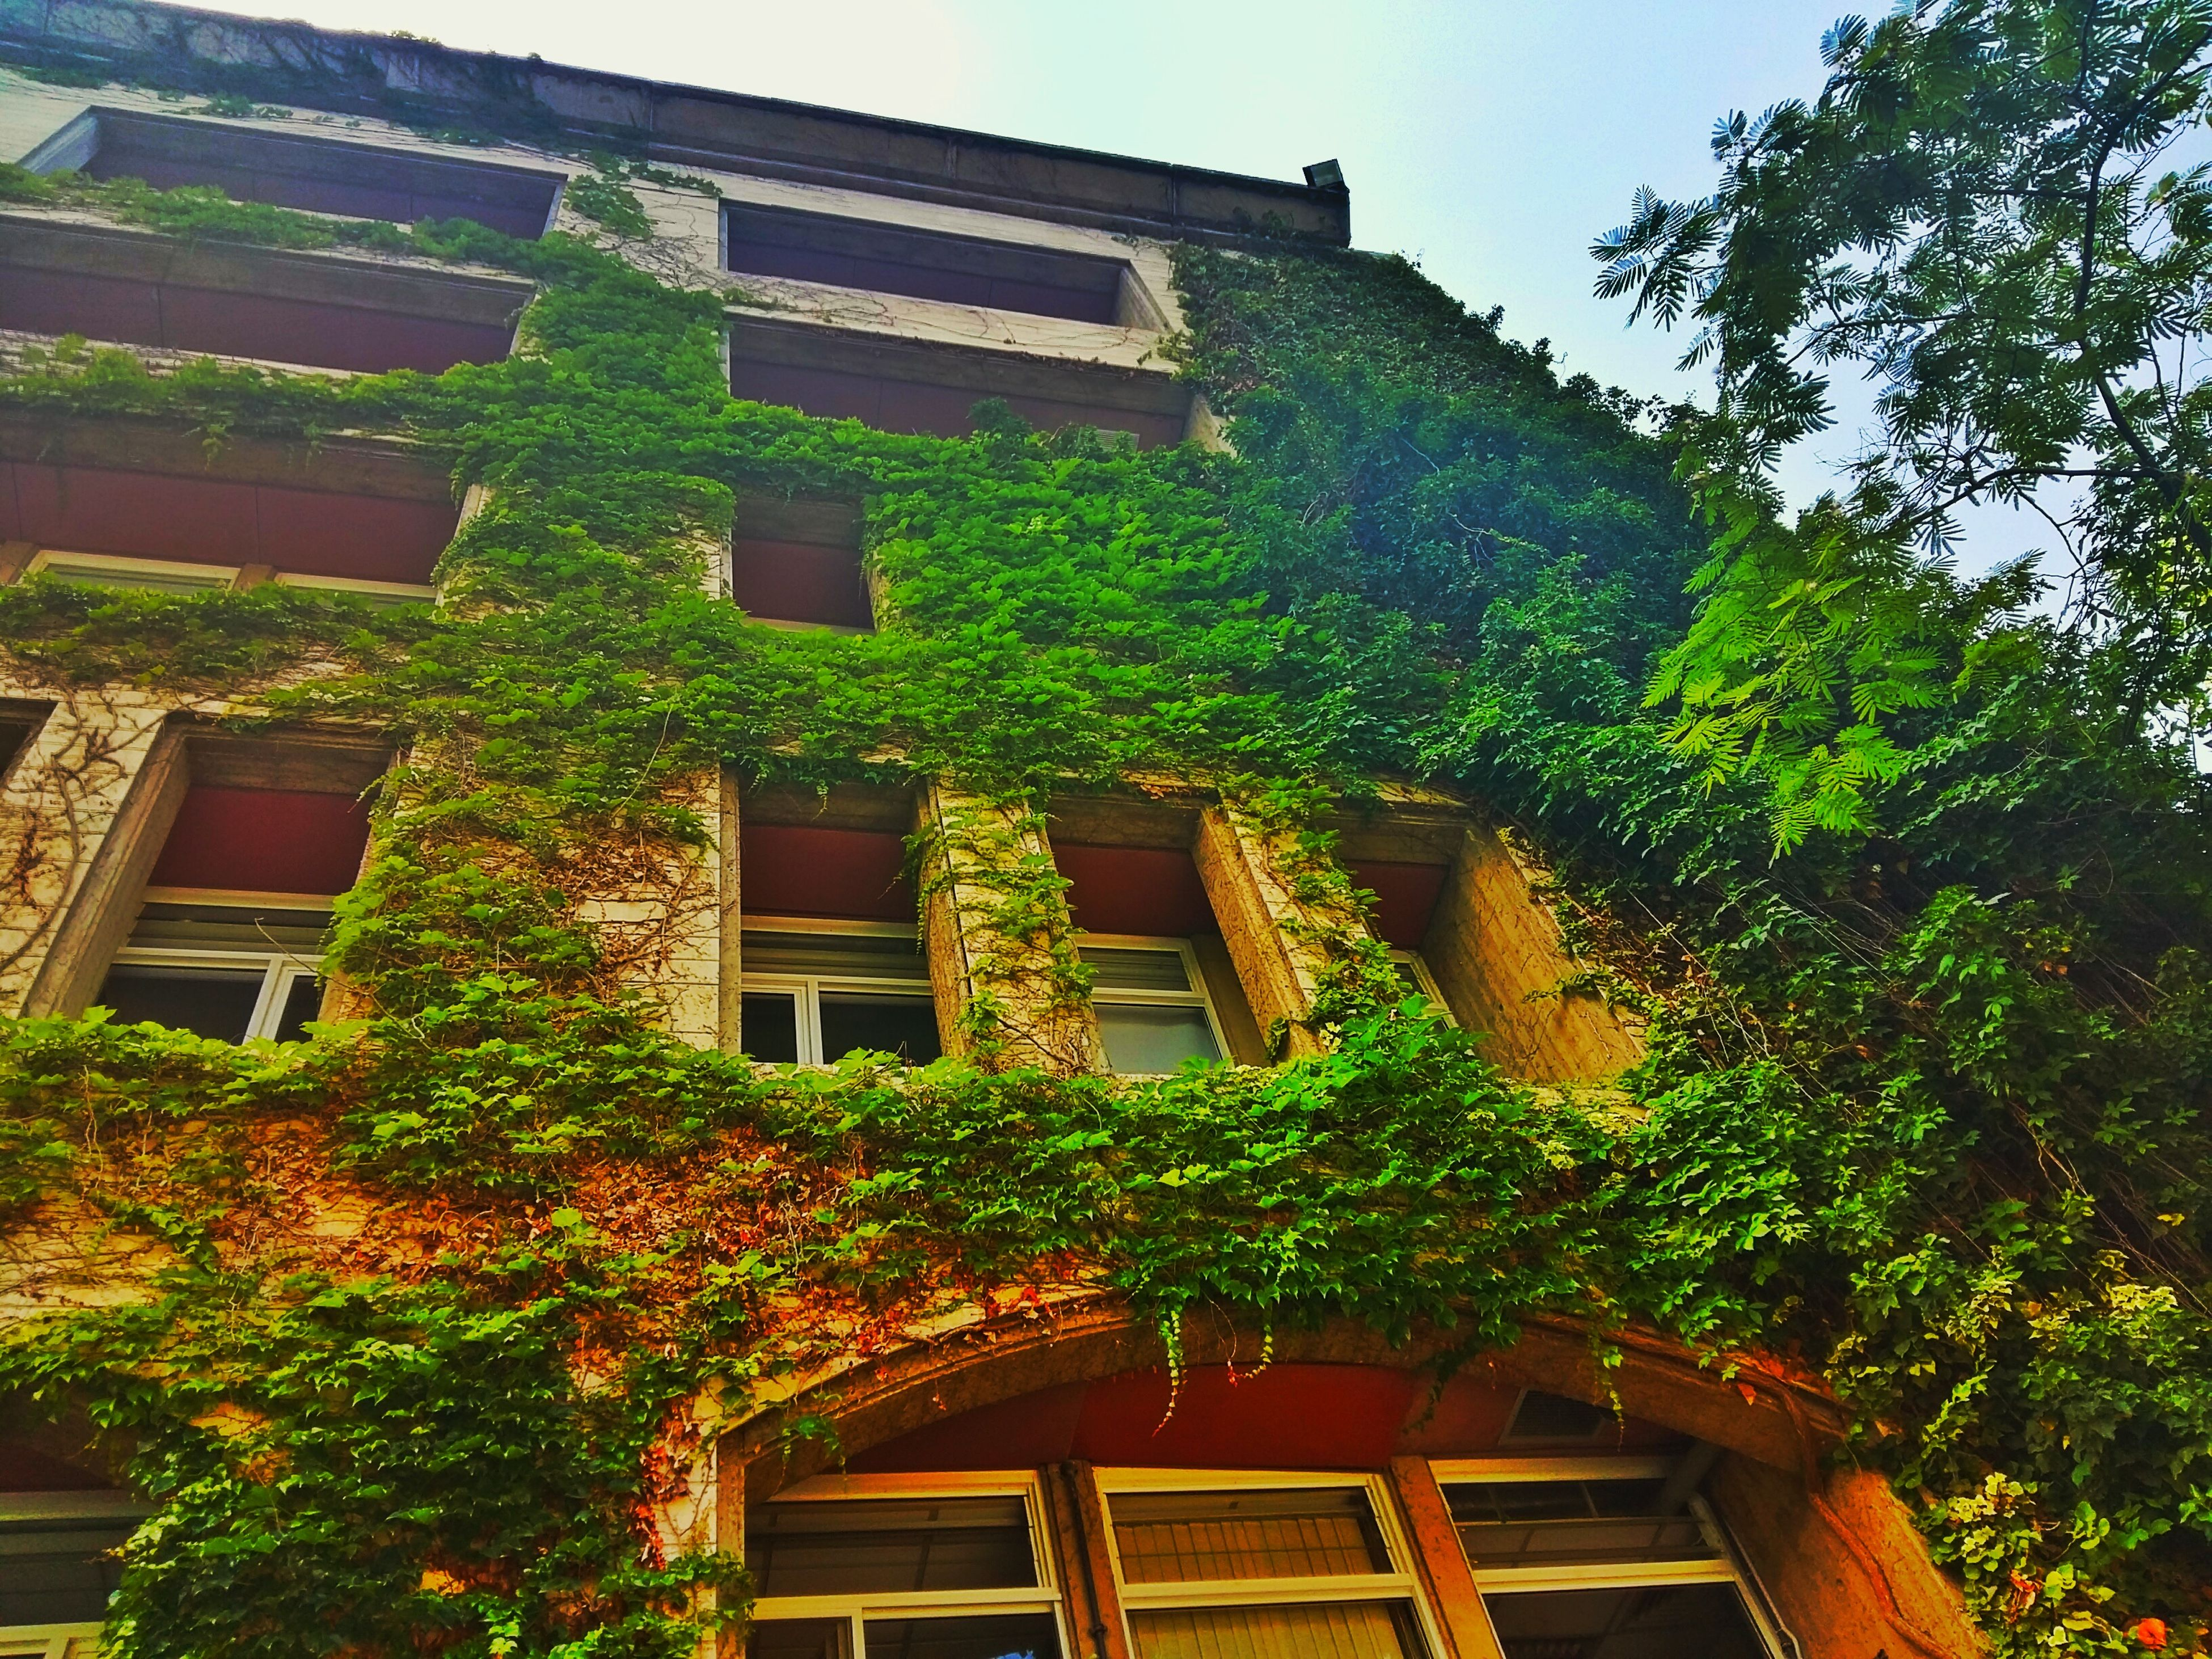 architecture, building exterior, built structure, window, low angle view, tree, house, residential building, residential structure, growth, plant, balcony, day, sky, building, outdoors, no people, ivy, sunlight, clear sky